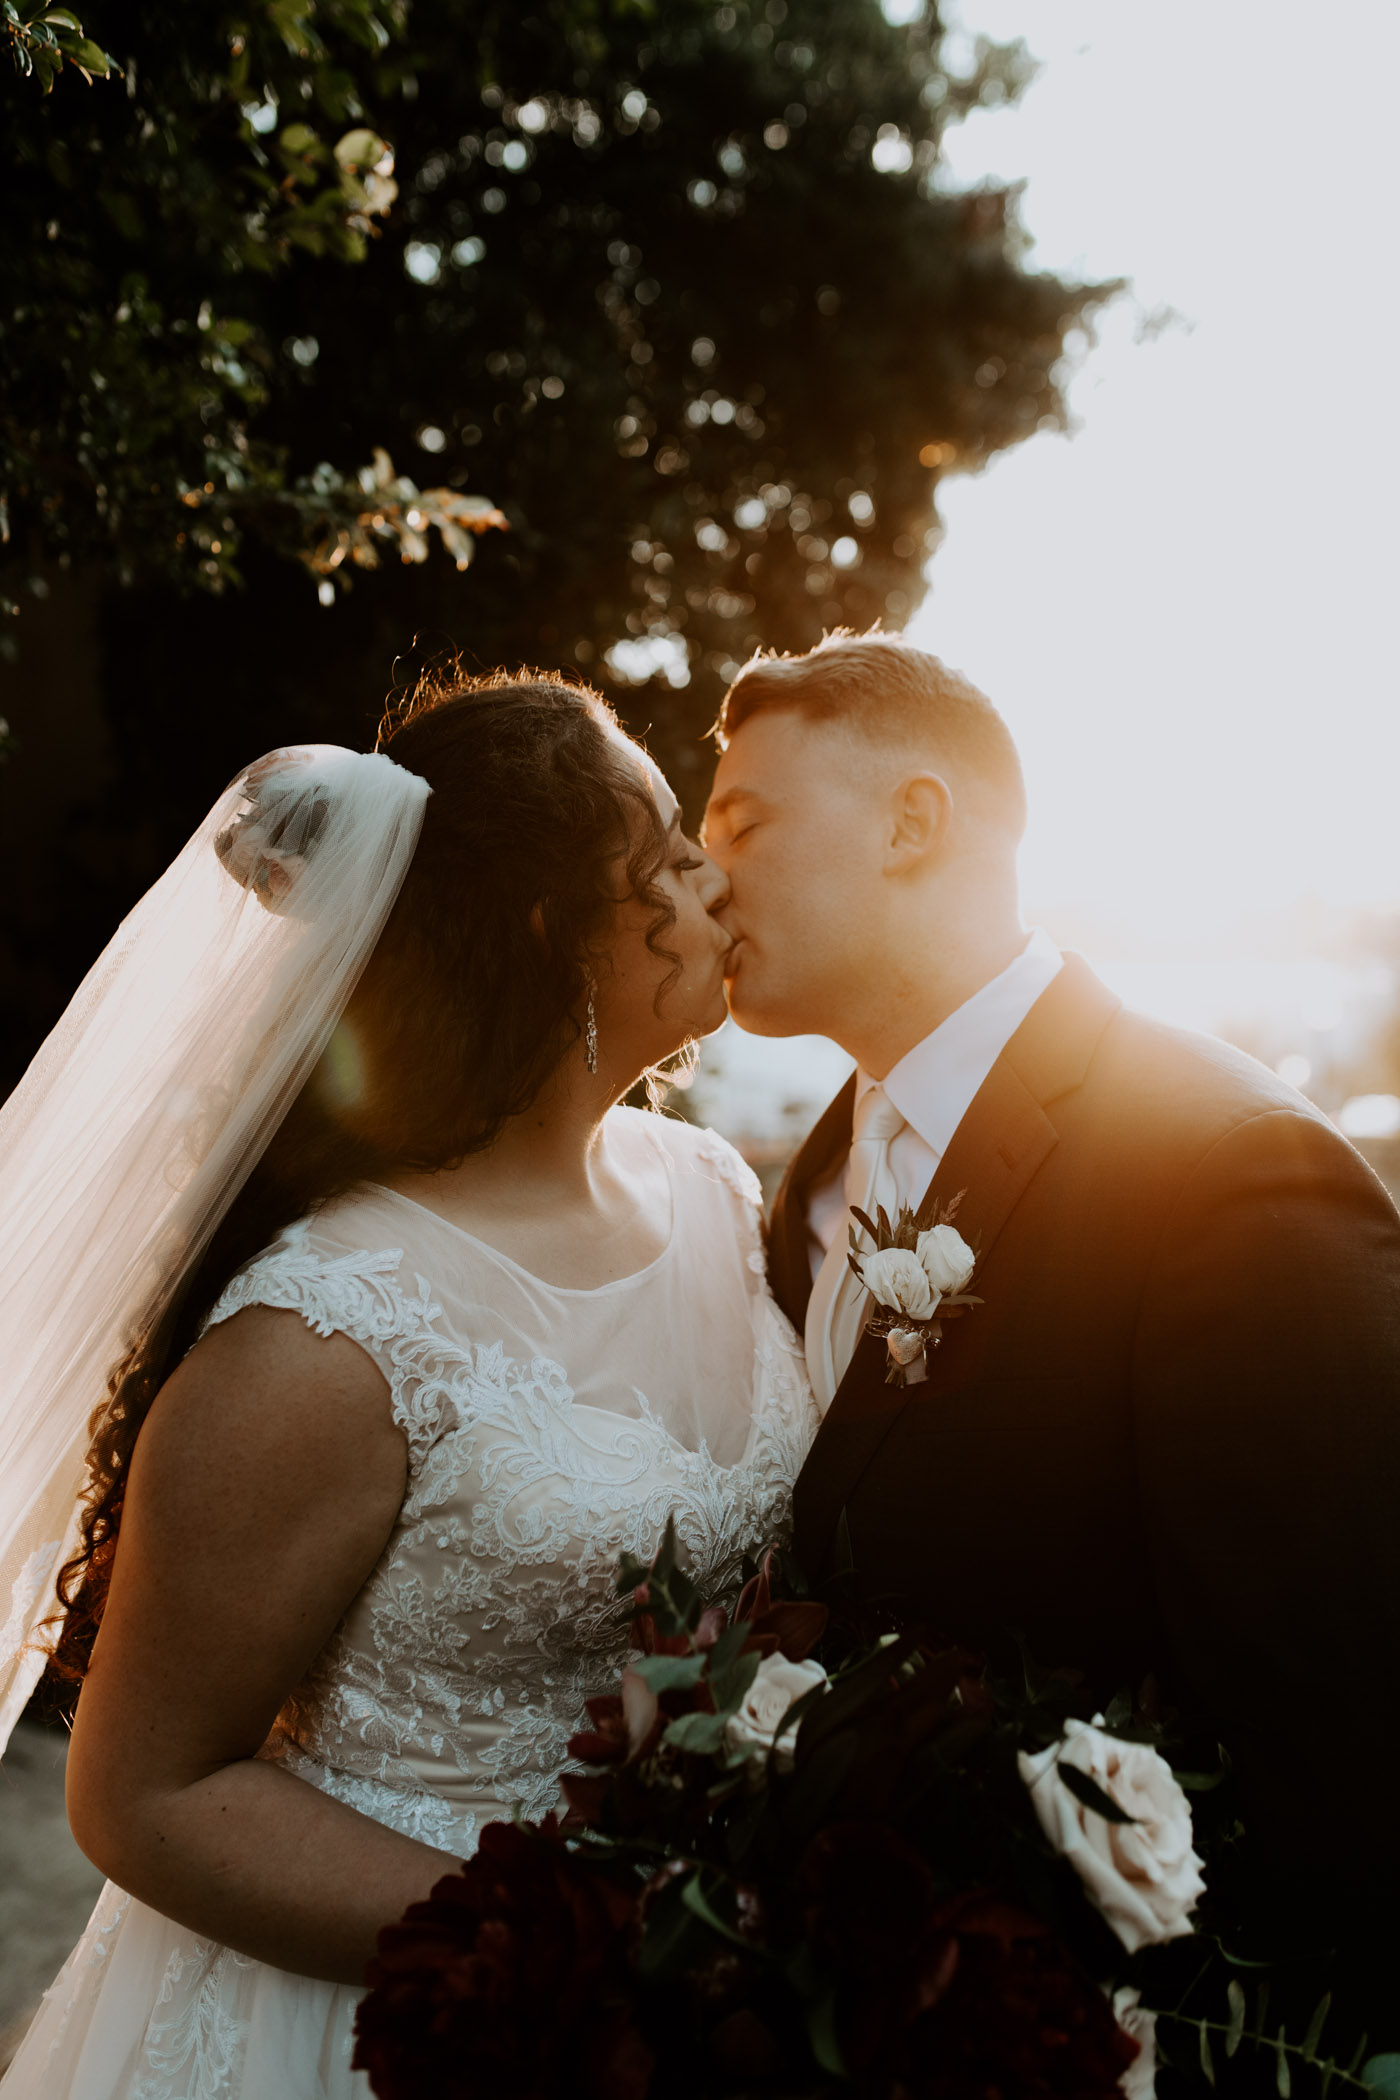 Bride and groom kissing at golden hour at their wedding venue